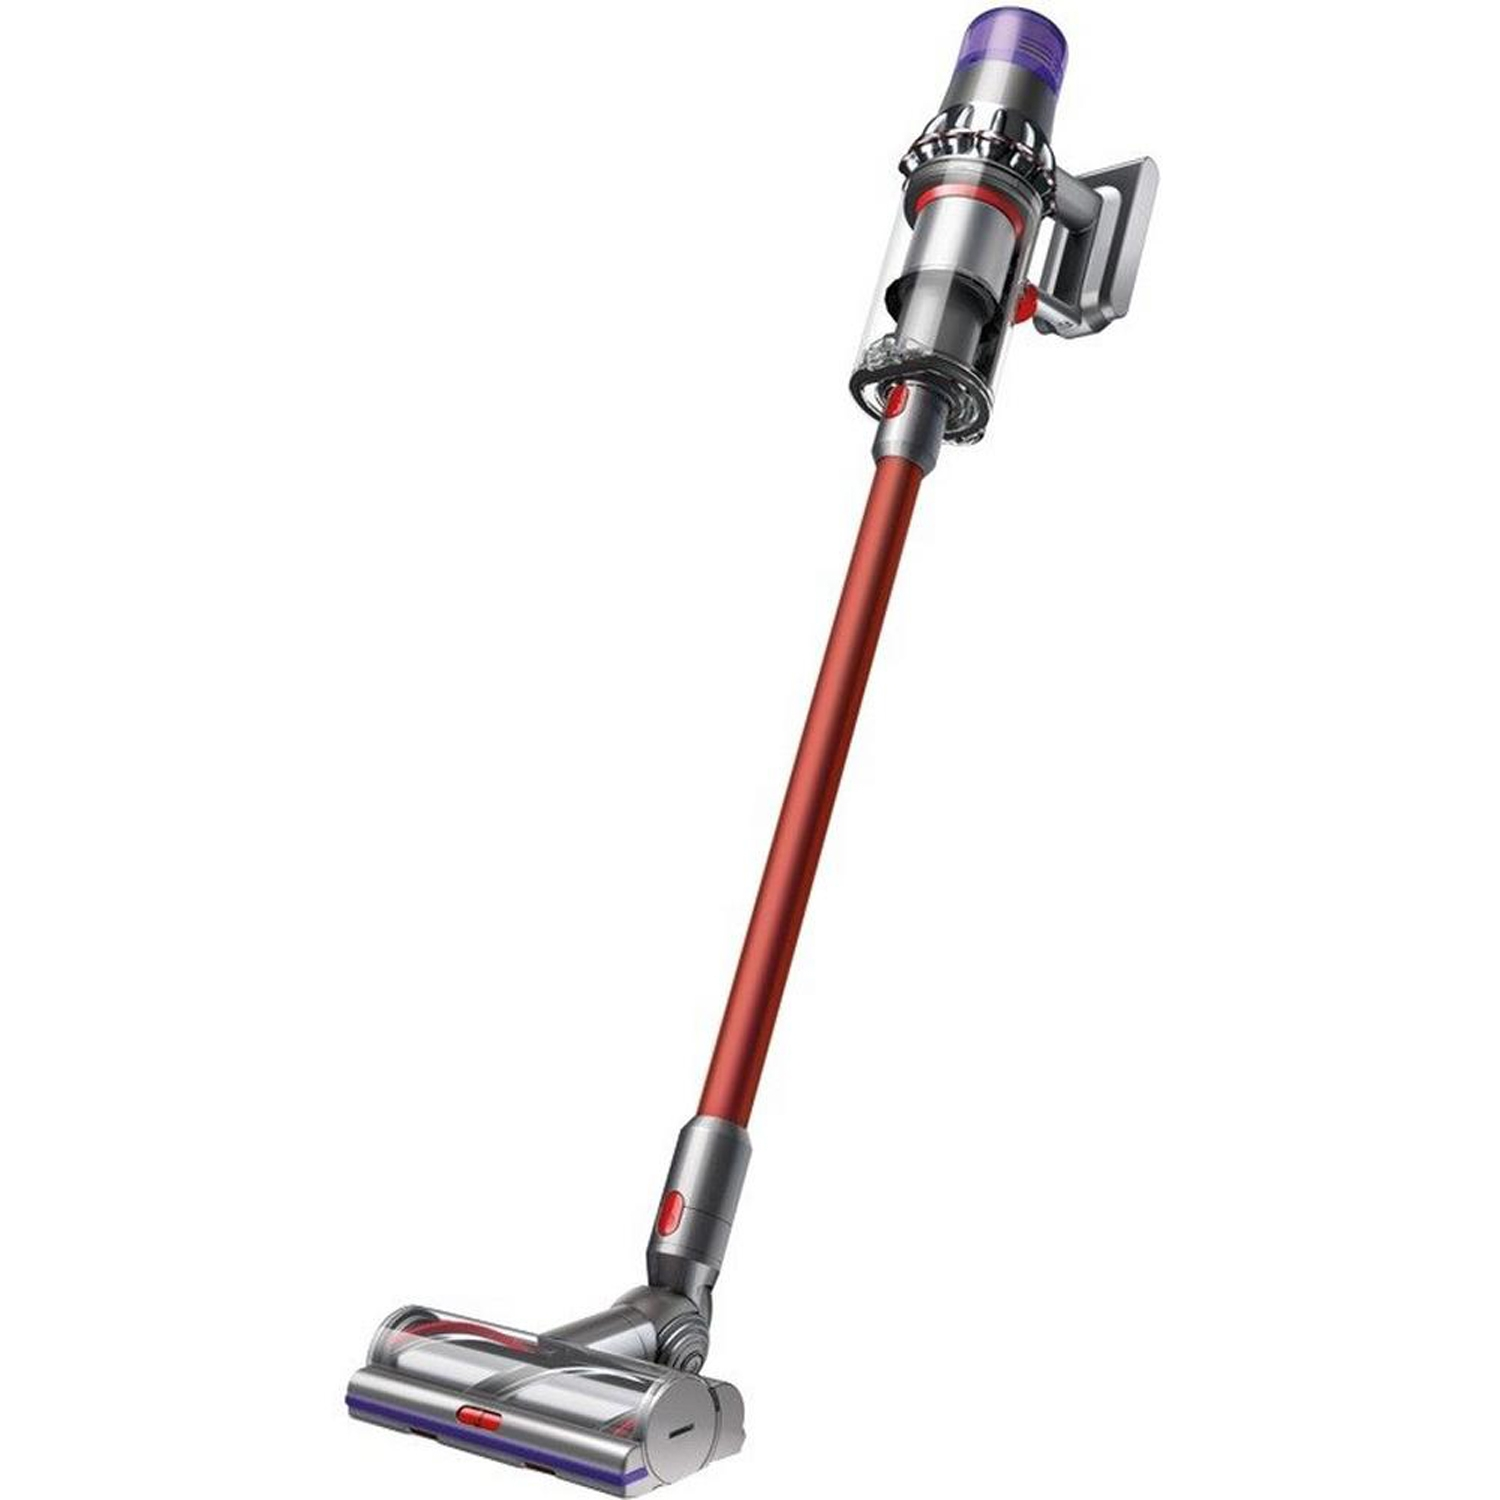 Image of Dyson V11 Absolute Extra Cordless Vacuum, Red